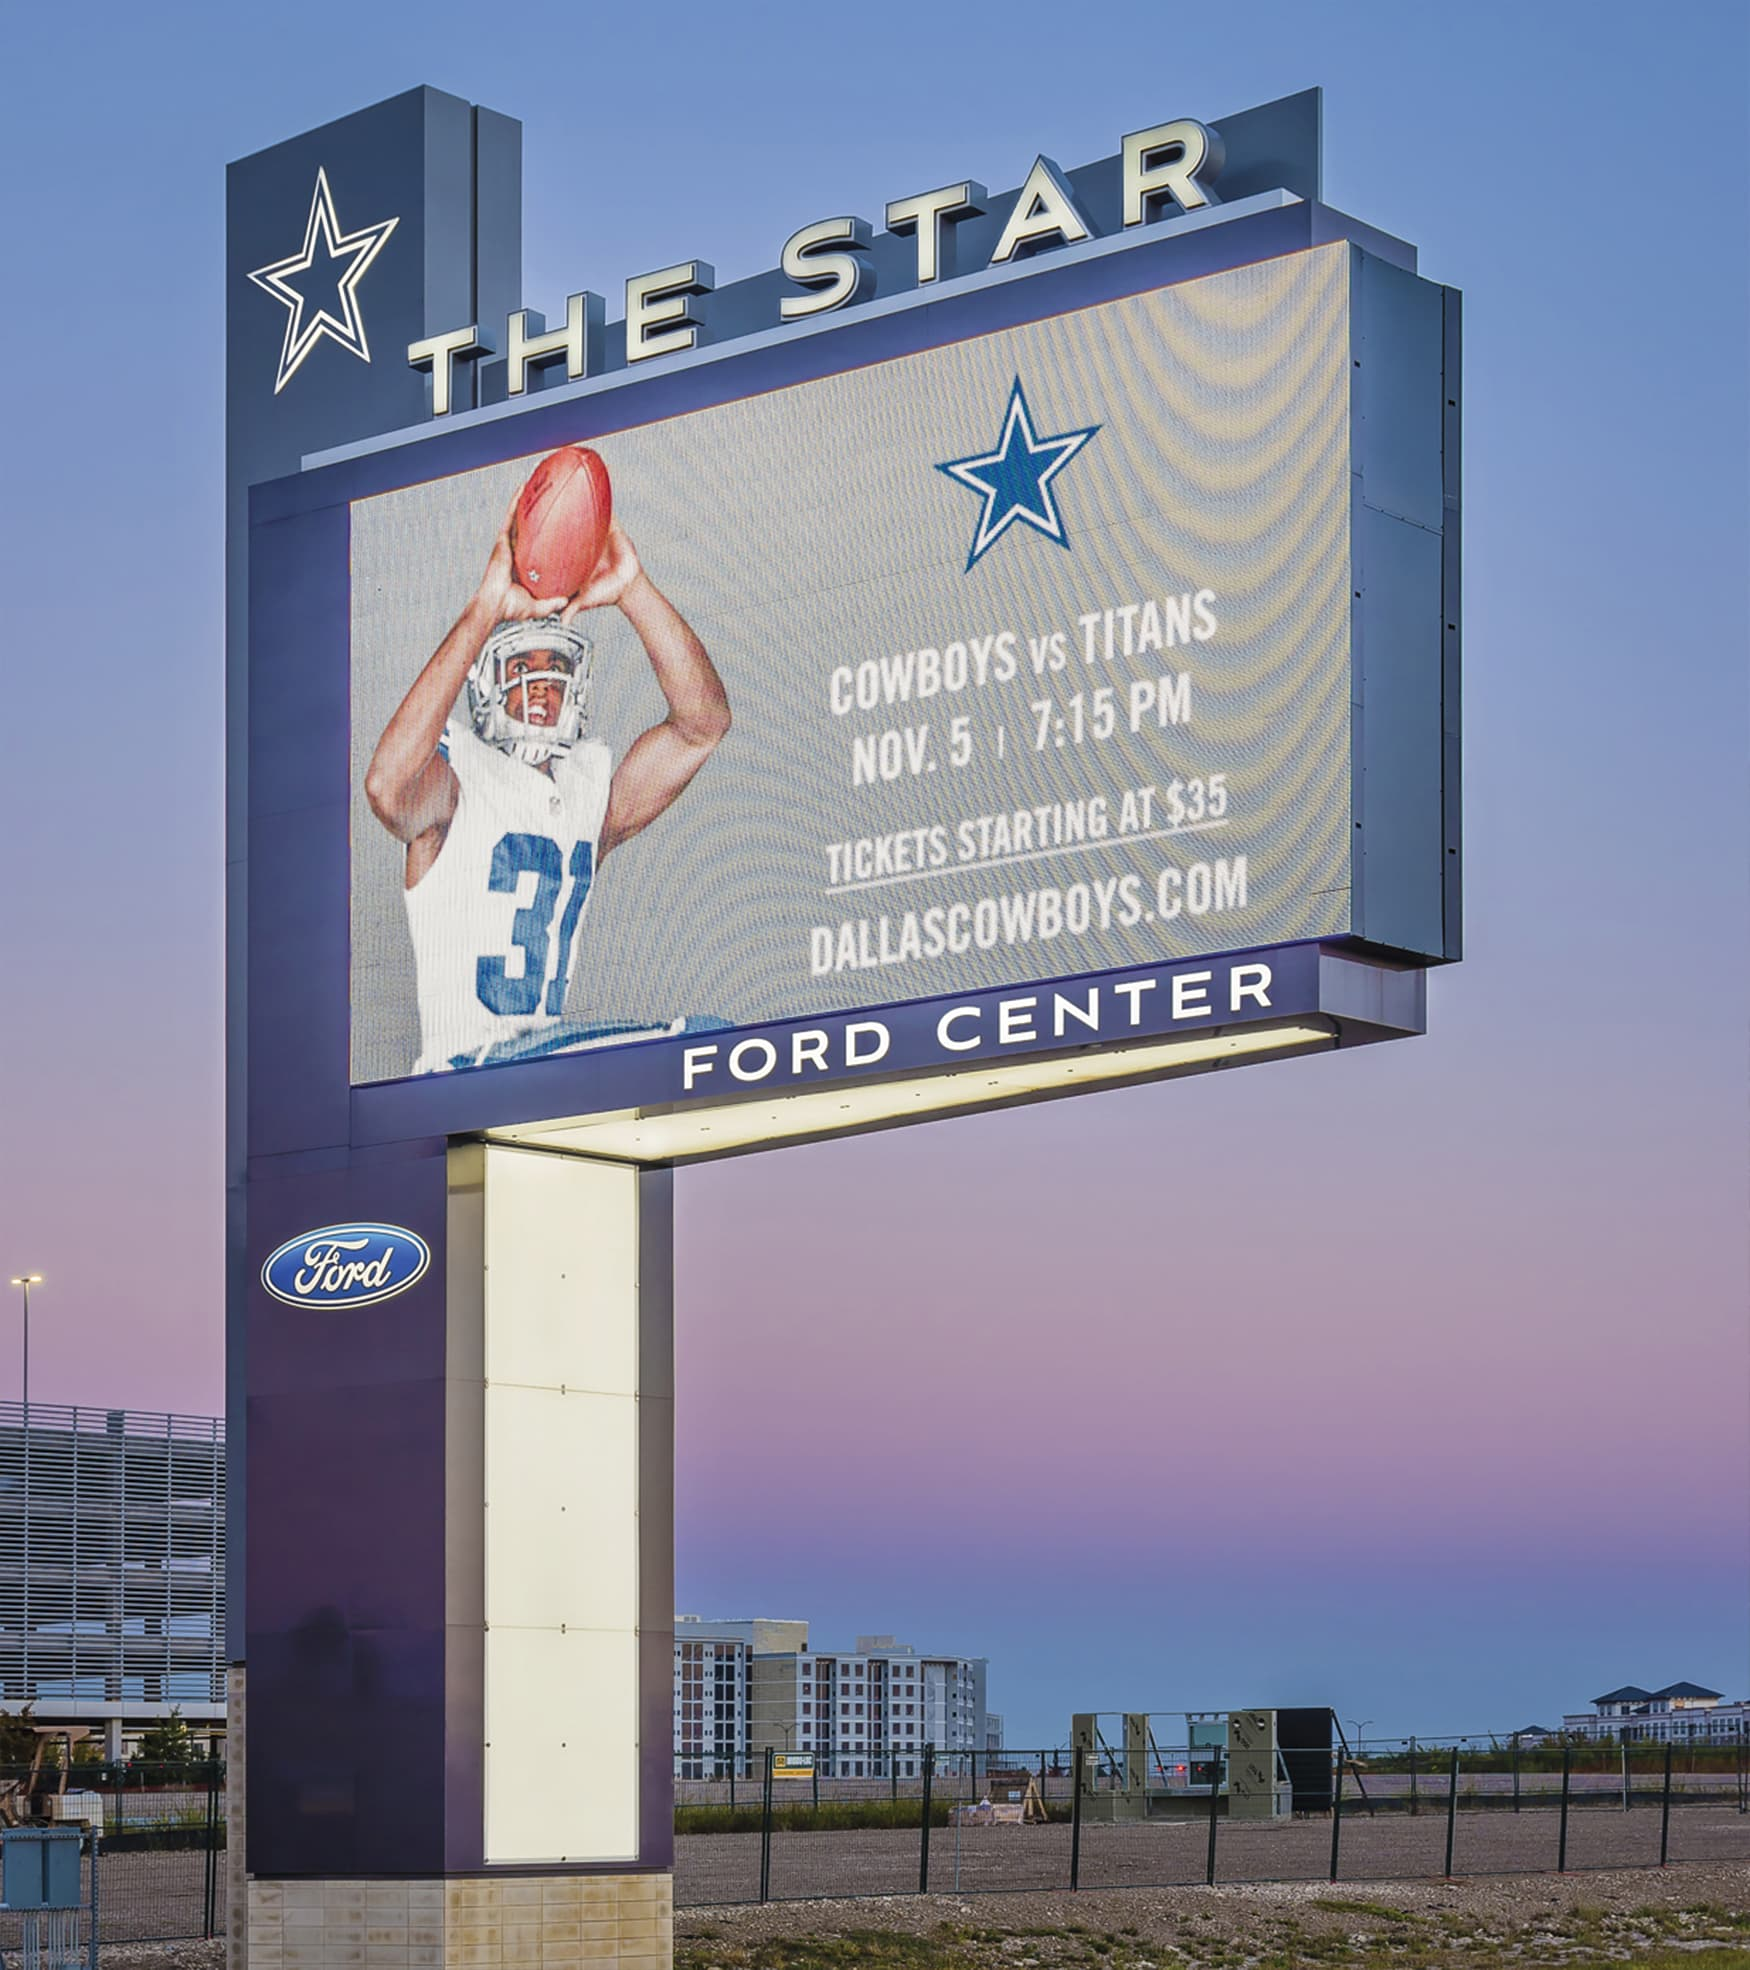 The Star Dallas Cowboys digital freeway pylon